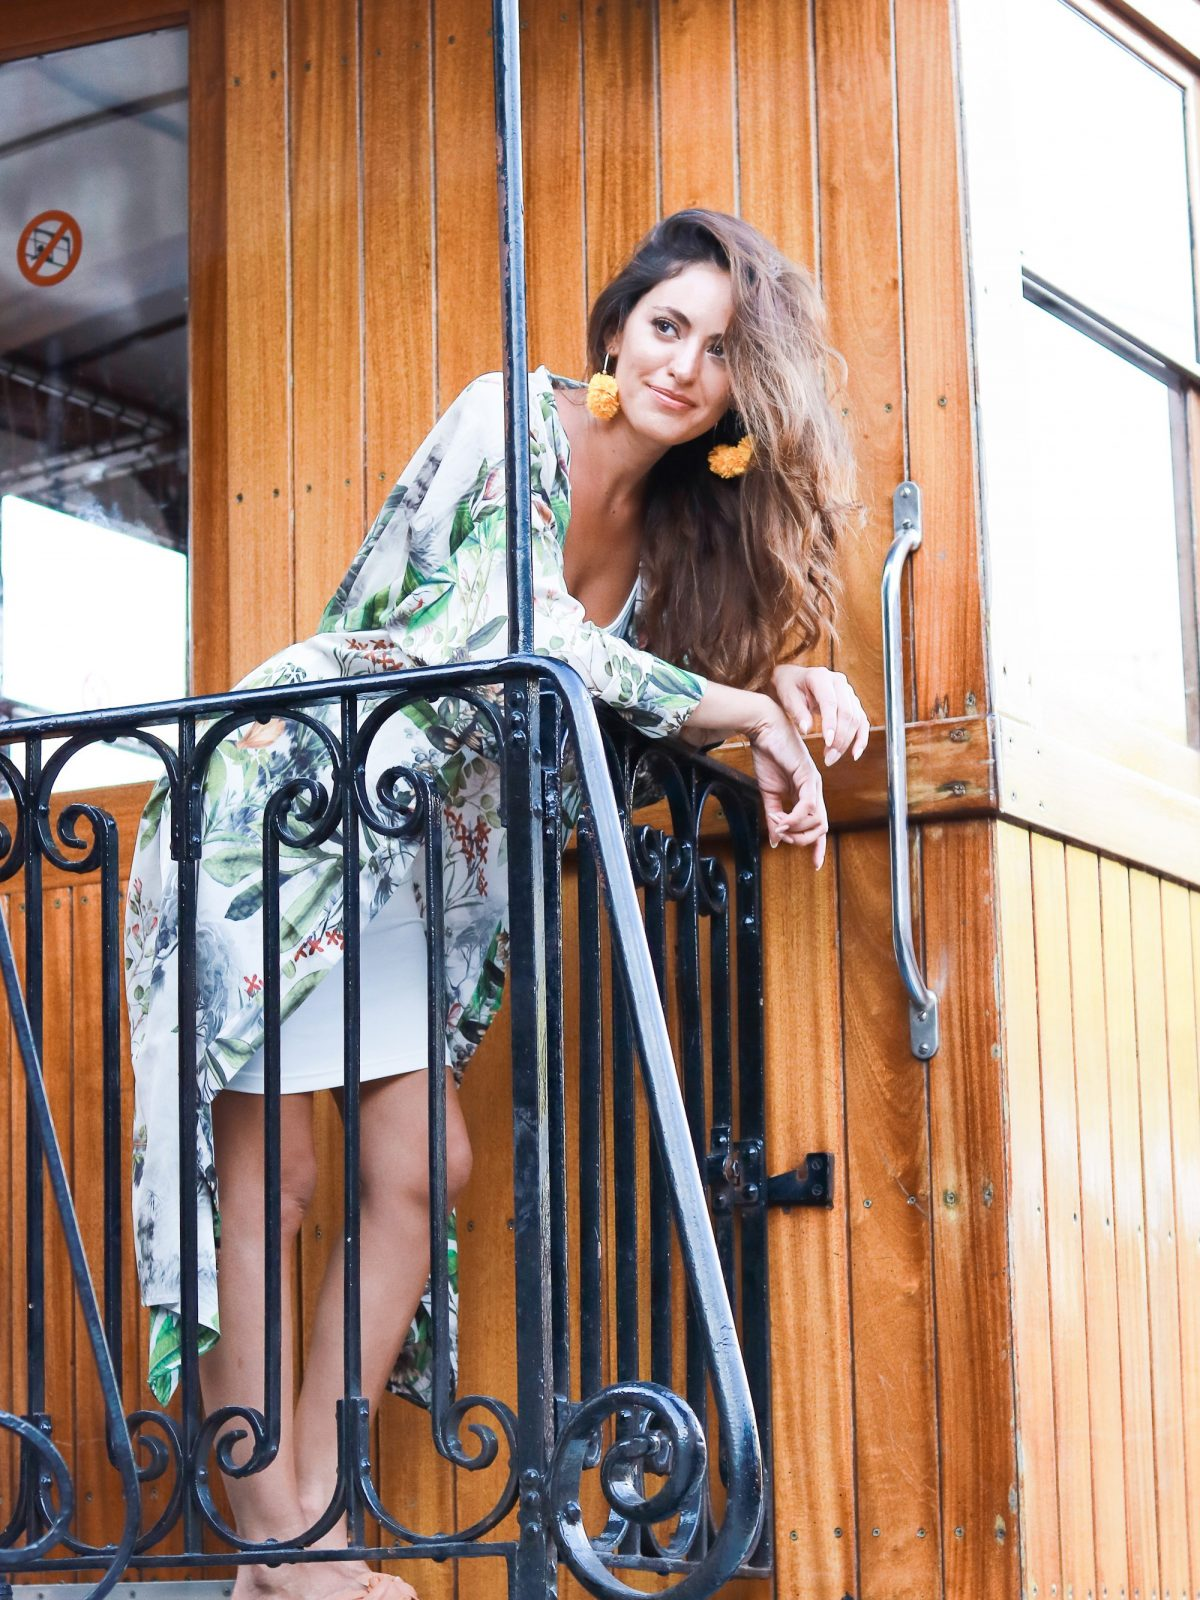 train from palma to soller, mallorca train, simple summer style, how to wear a white dress, casual style, summer outfit ideas, travel outfit ideas, H & M - Patterned Kimono - Natural white/patterned - Women, baublebar Sanchia Hoop Earrings, knot slides, palma train station, vintage wooden train mallorca, what to do in mallorca